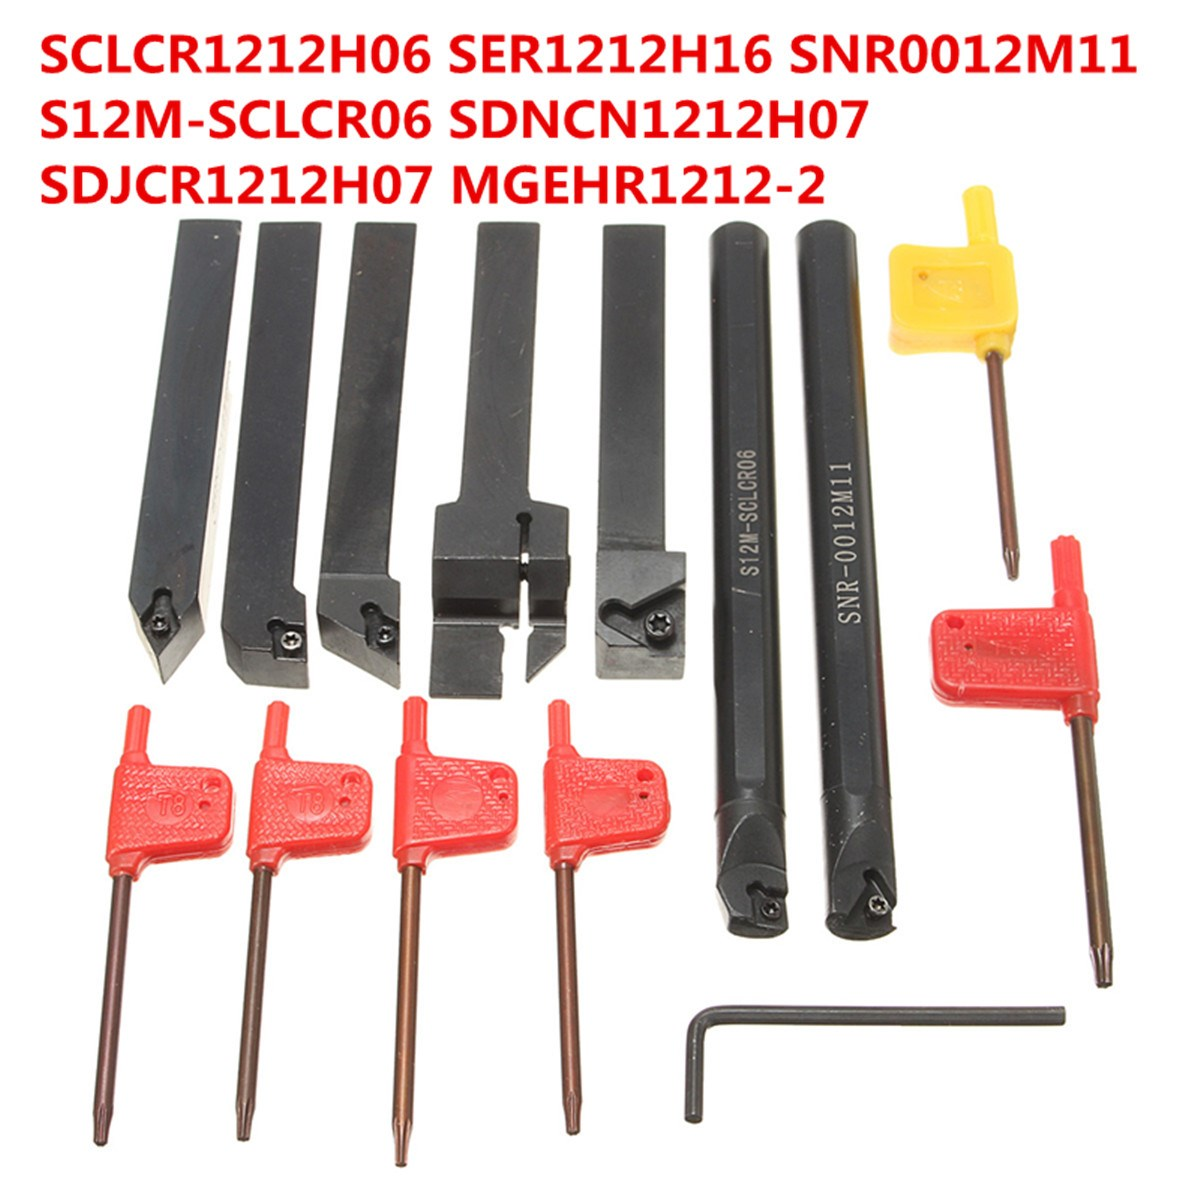 7 Set 12mm CNC Lathe Turning Tool Holder SCLCR1212H06/SER1212H16/SNR0012M11/S12M-SCLCR06/SDNCN1212H07/SDJCR1212H07/MGEHR1212-2 zcc ct cutter bar pdnnr l2020k15 p hole clamping tool holders external turning tools cnc lathe tool holder for dn series